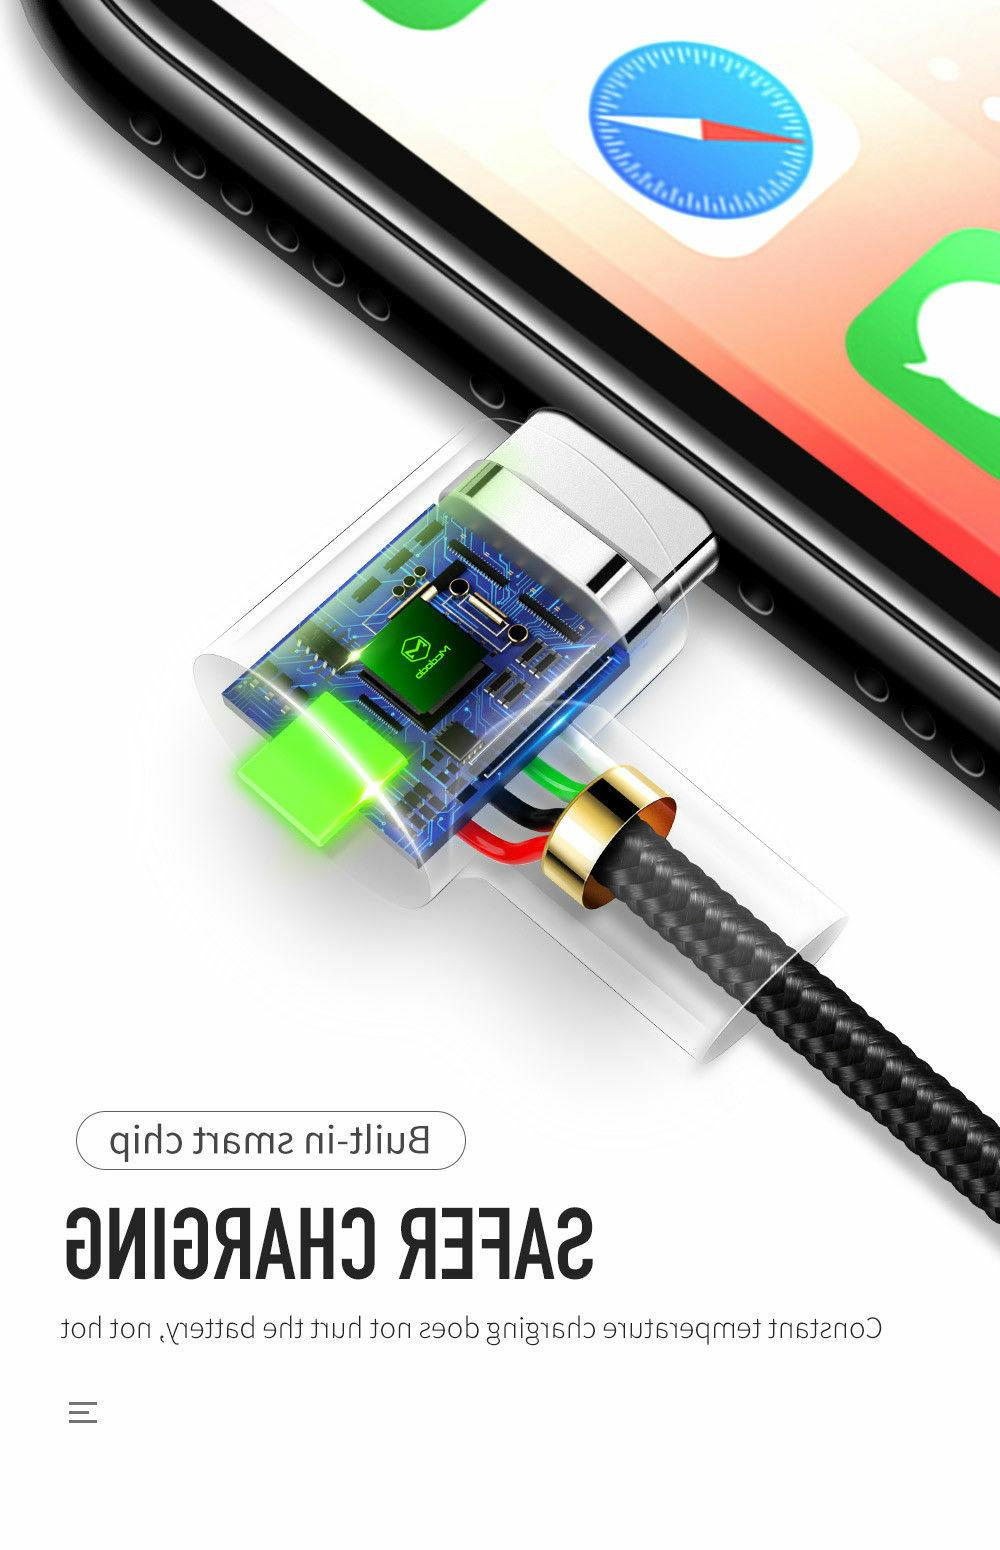 Mcdodo 90 USB Fast Charging for iPhone X 7